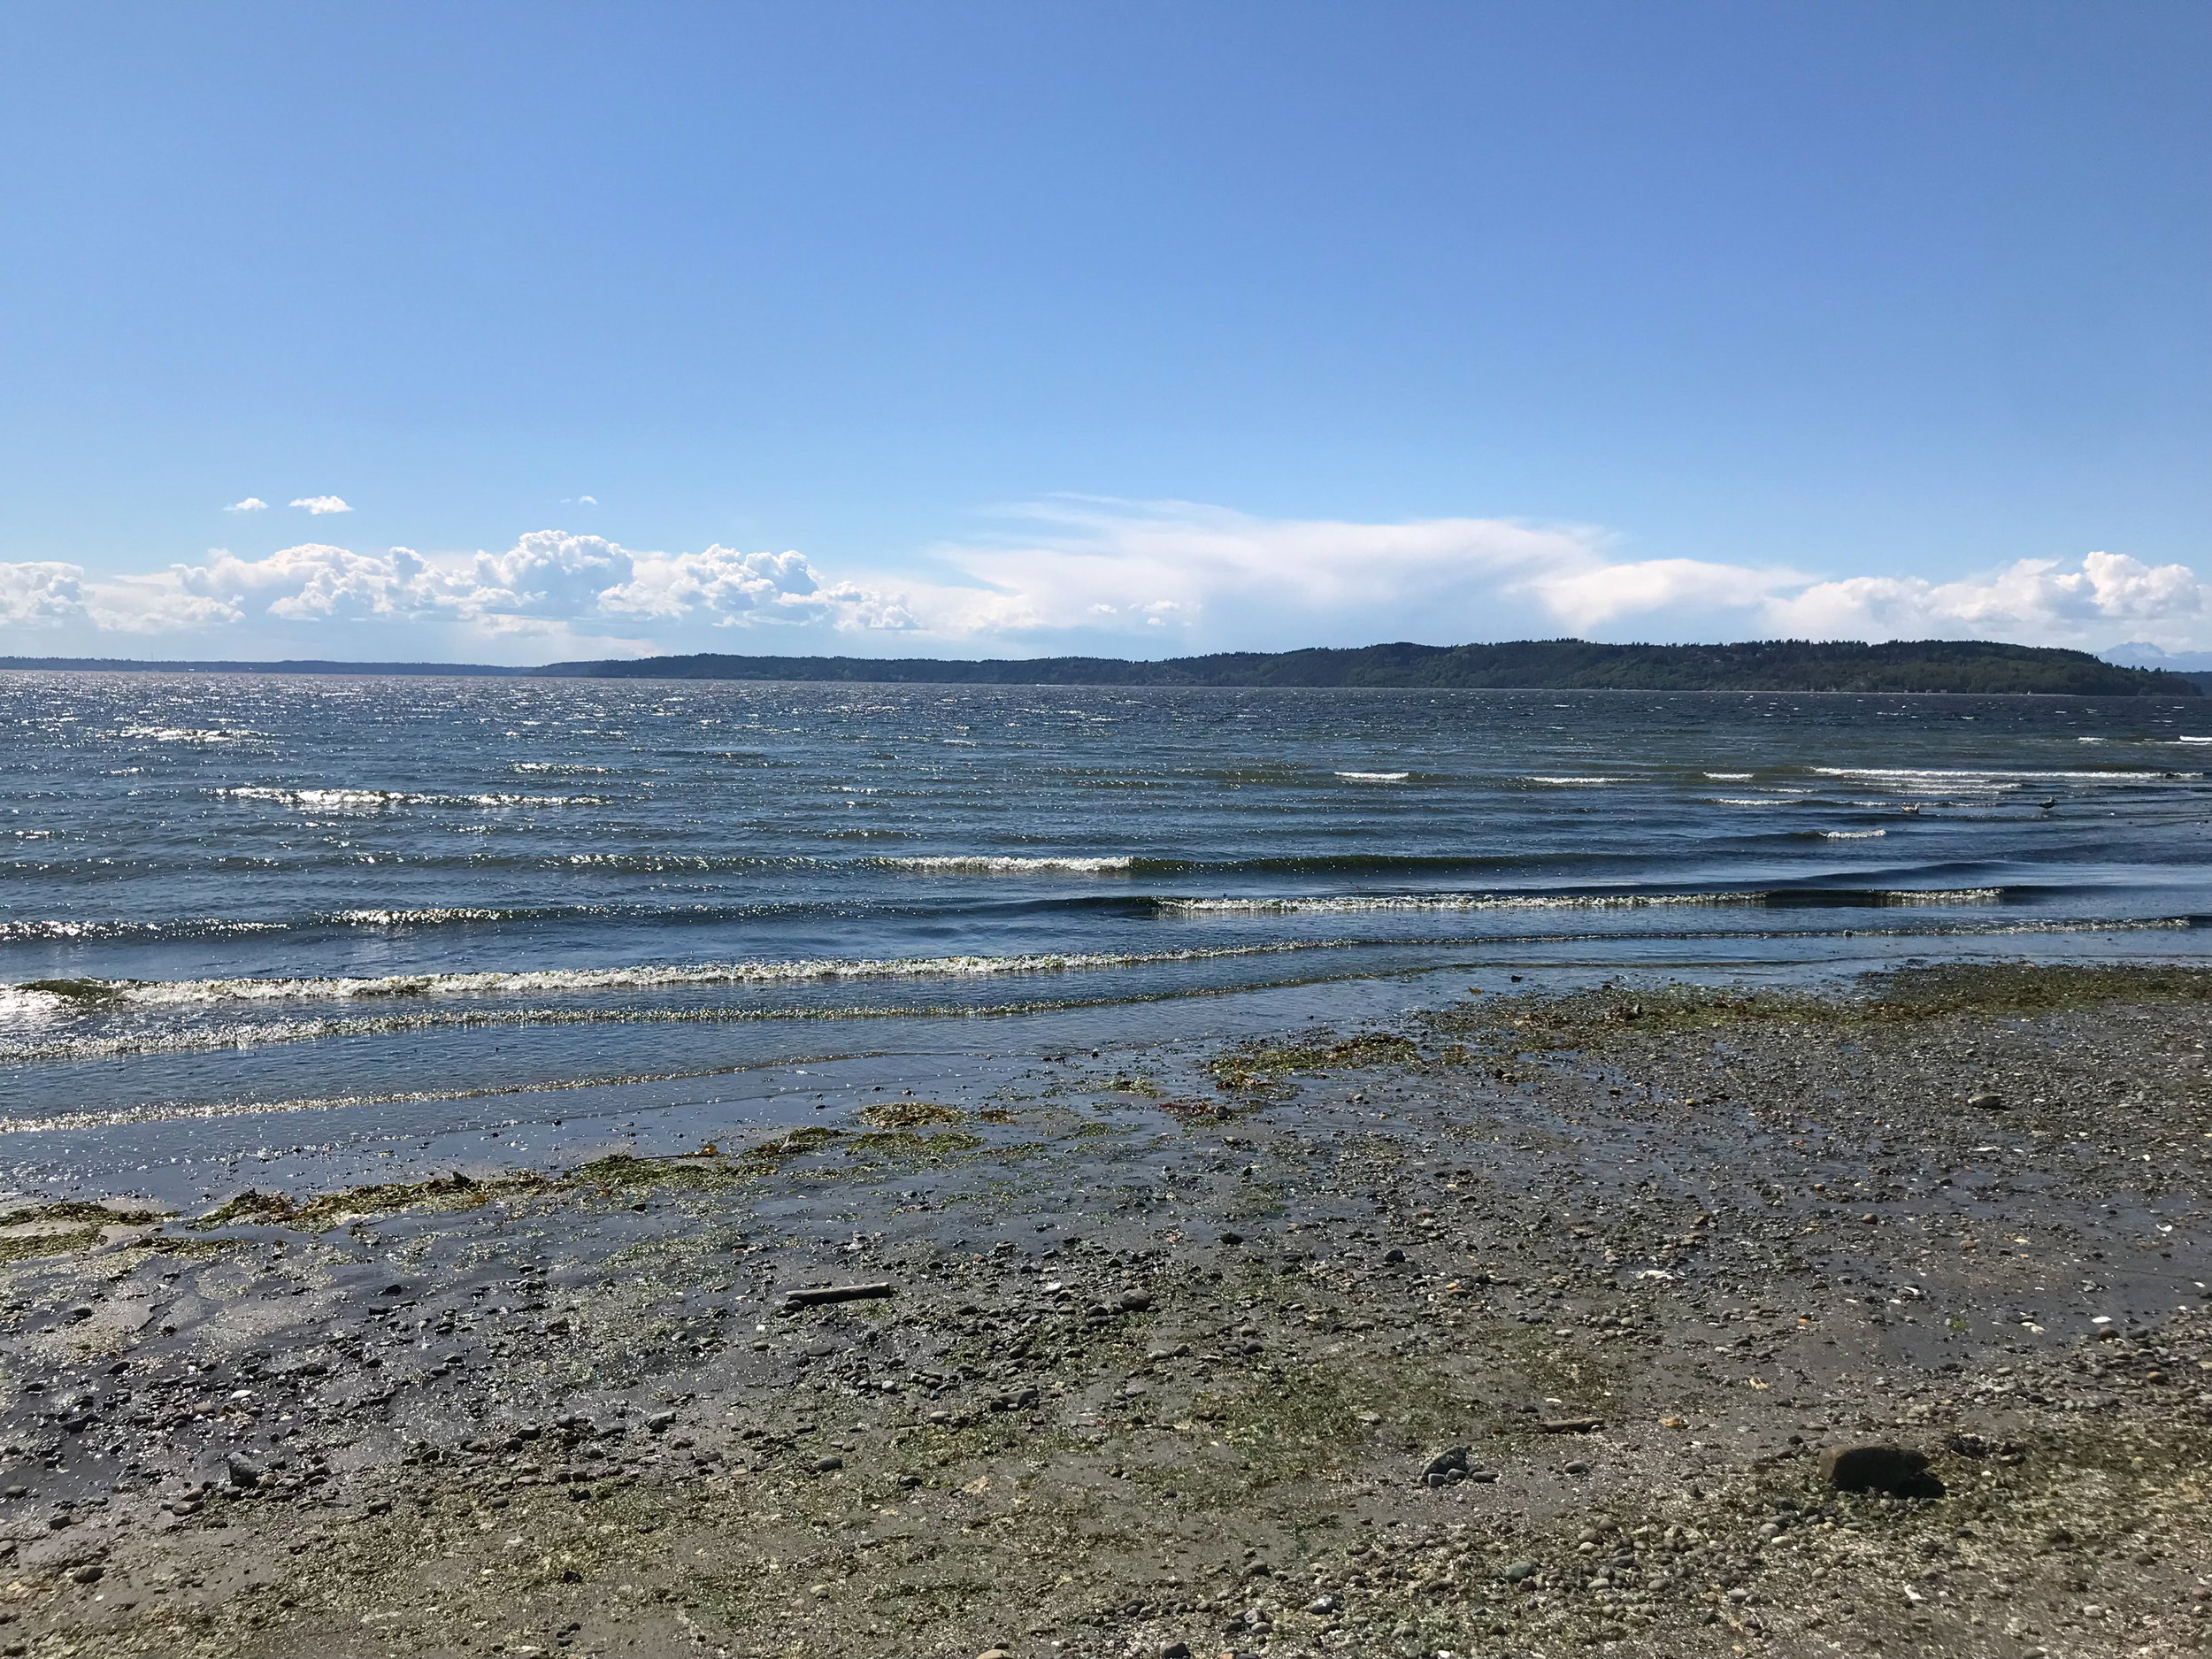 Puget Sound seen from Saltwater State Park